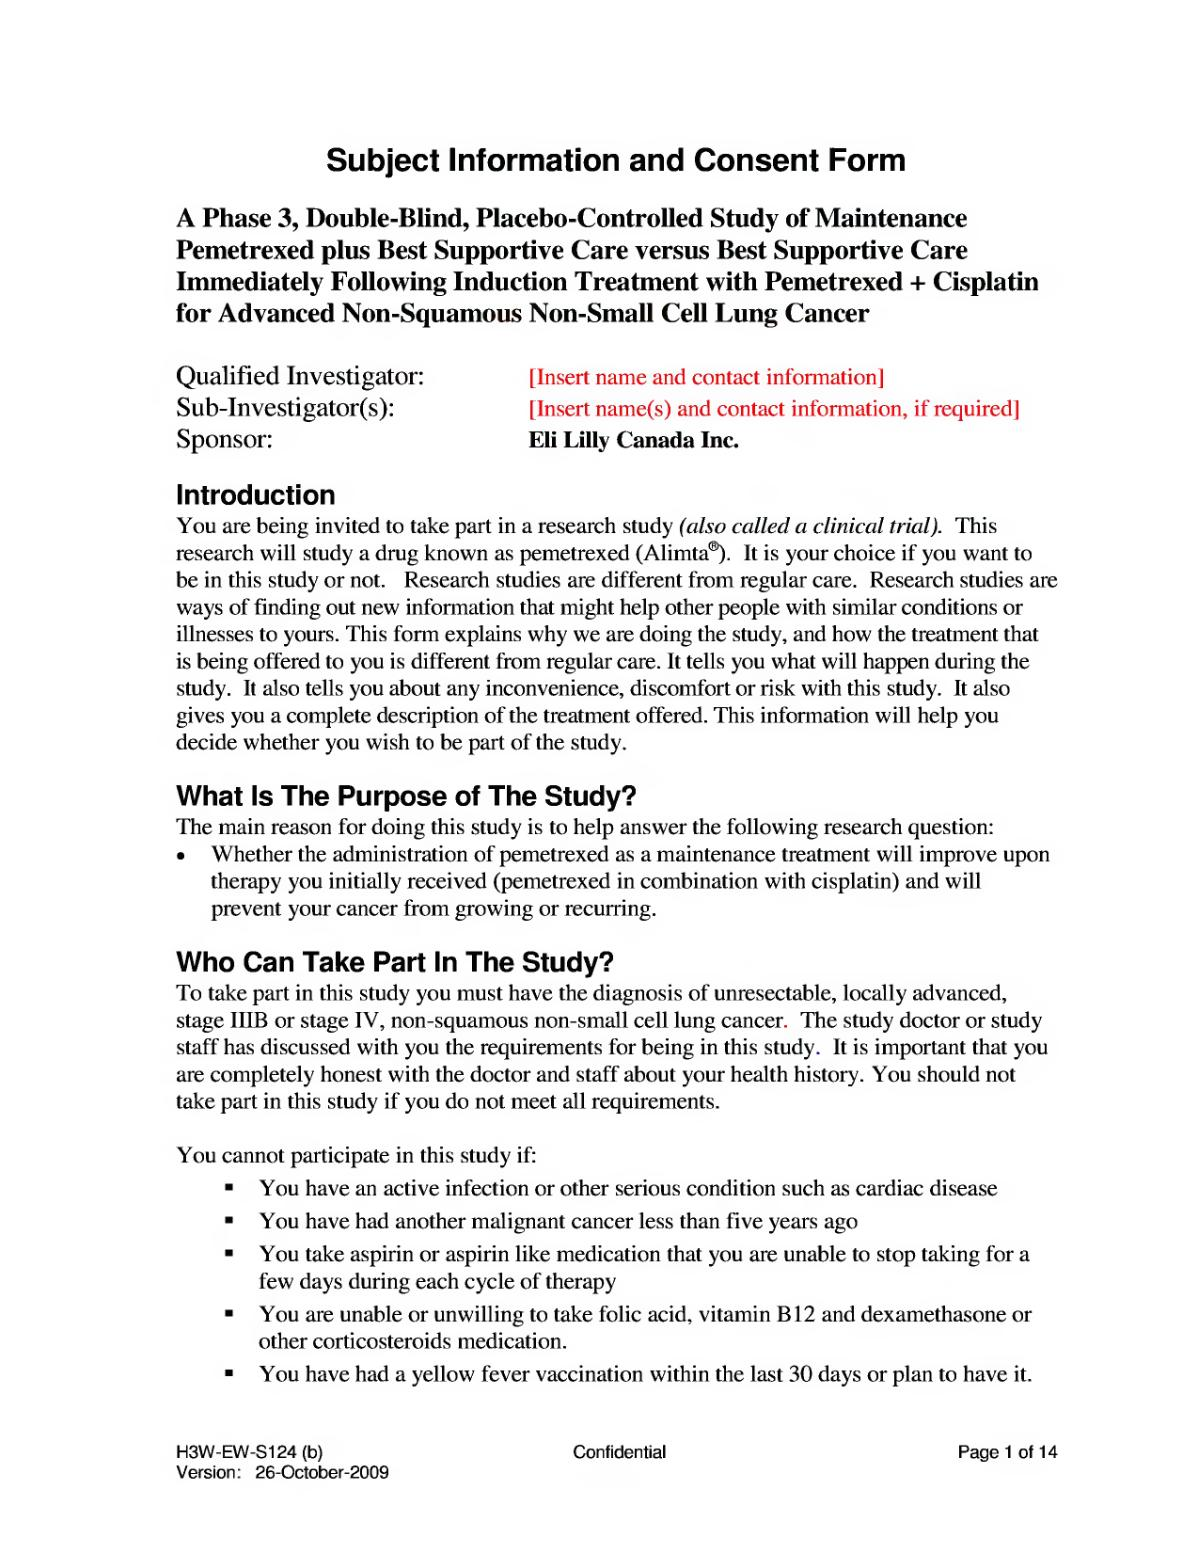 Act adult health care consent